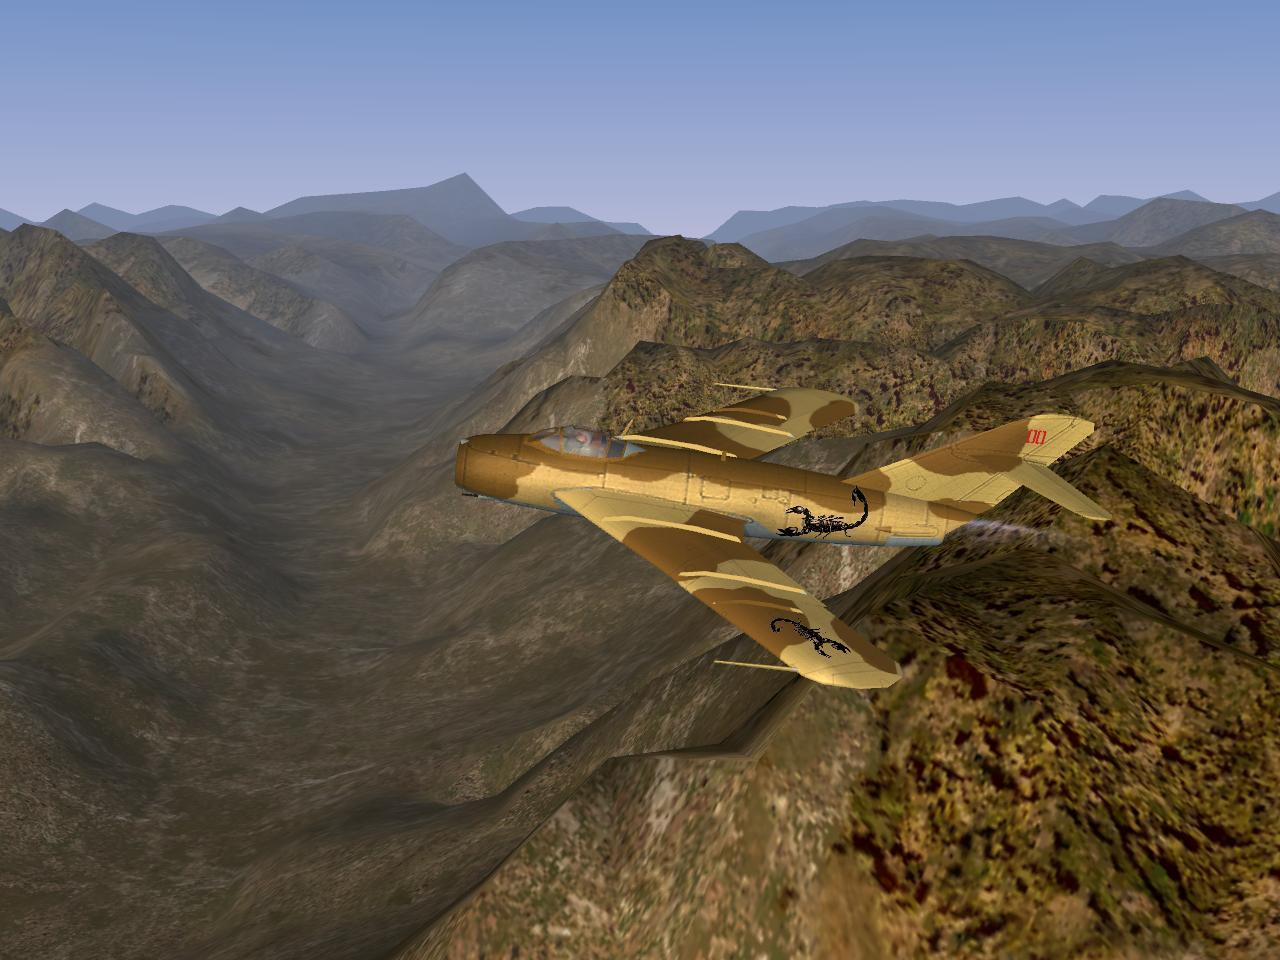 Scorpion squadron's MiG-17F flying over Desert Mountain